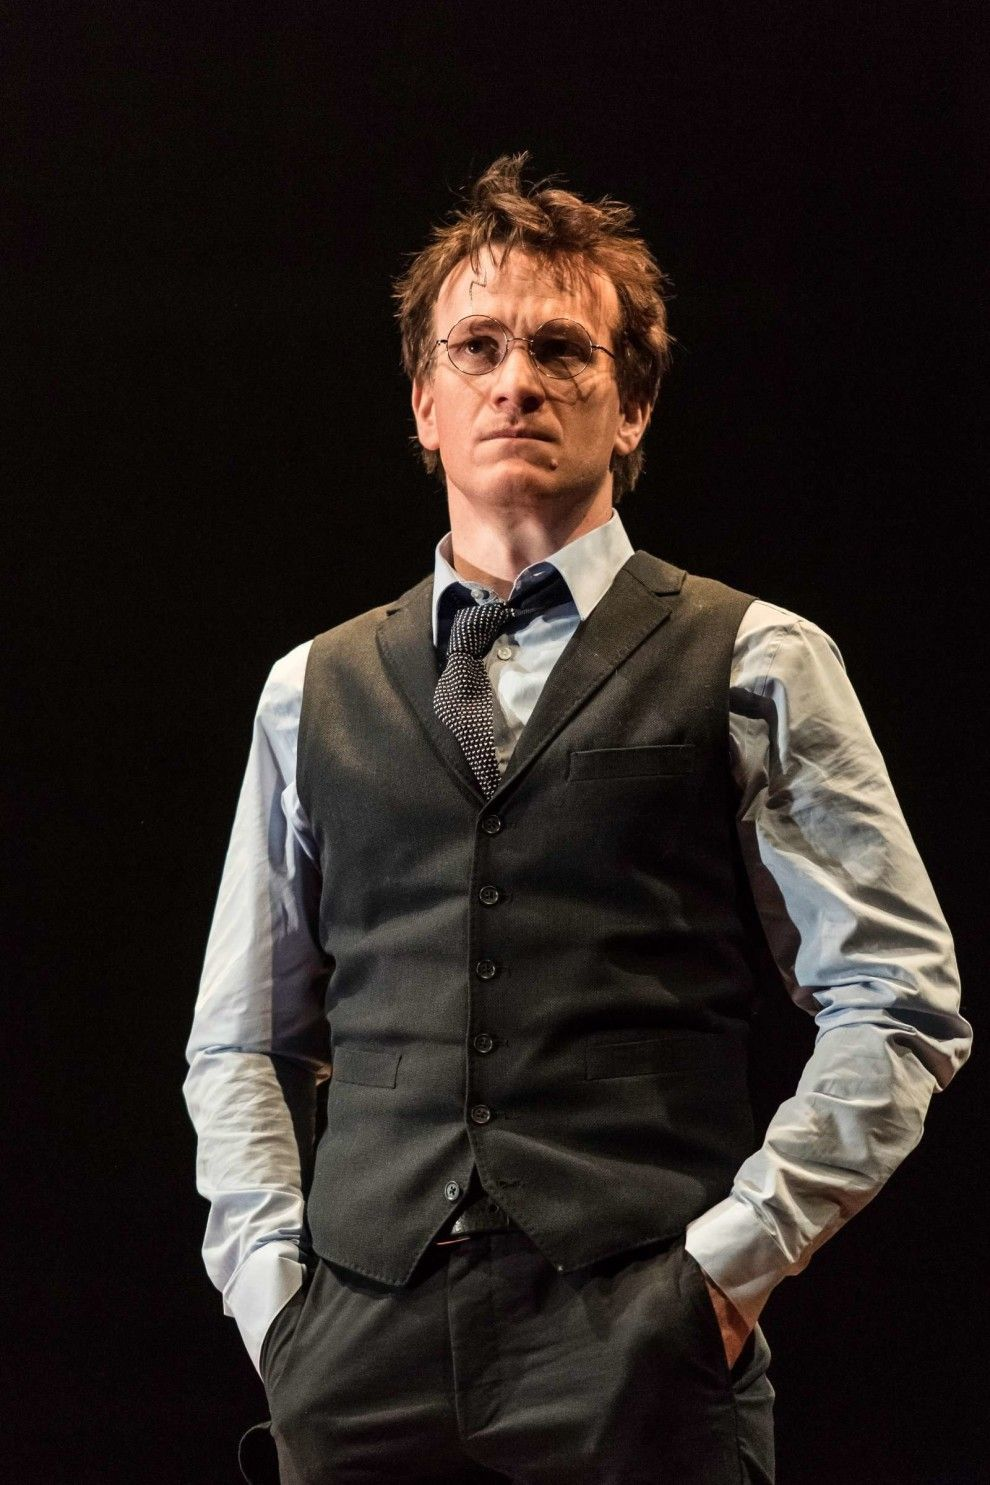 Harry Potter And The Cursed Child Photos Are Here And They Re So Magical Harry Potter Cursed Child Harry Potter Stories Harry Potter New